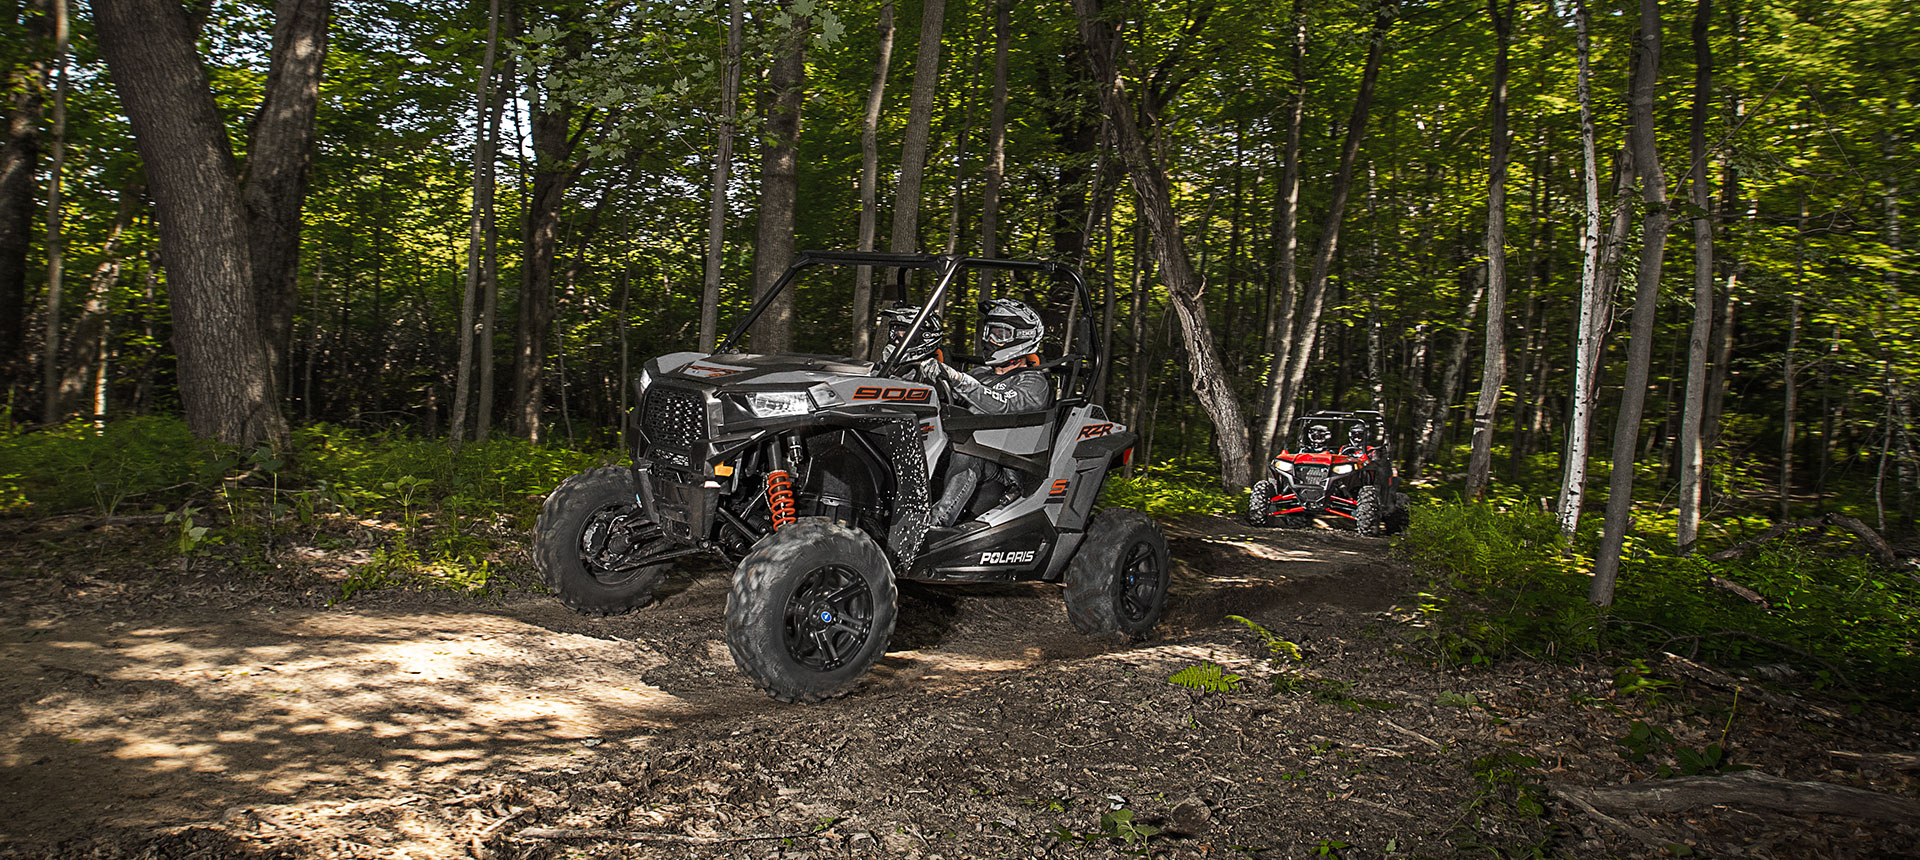 2019 Polaris RZR S 900 EPS in Albuquerque, New Mexico - Photo 8